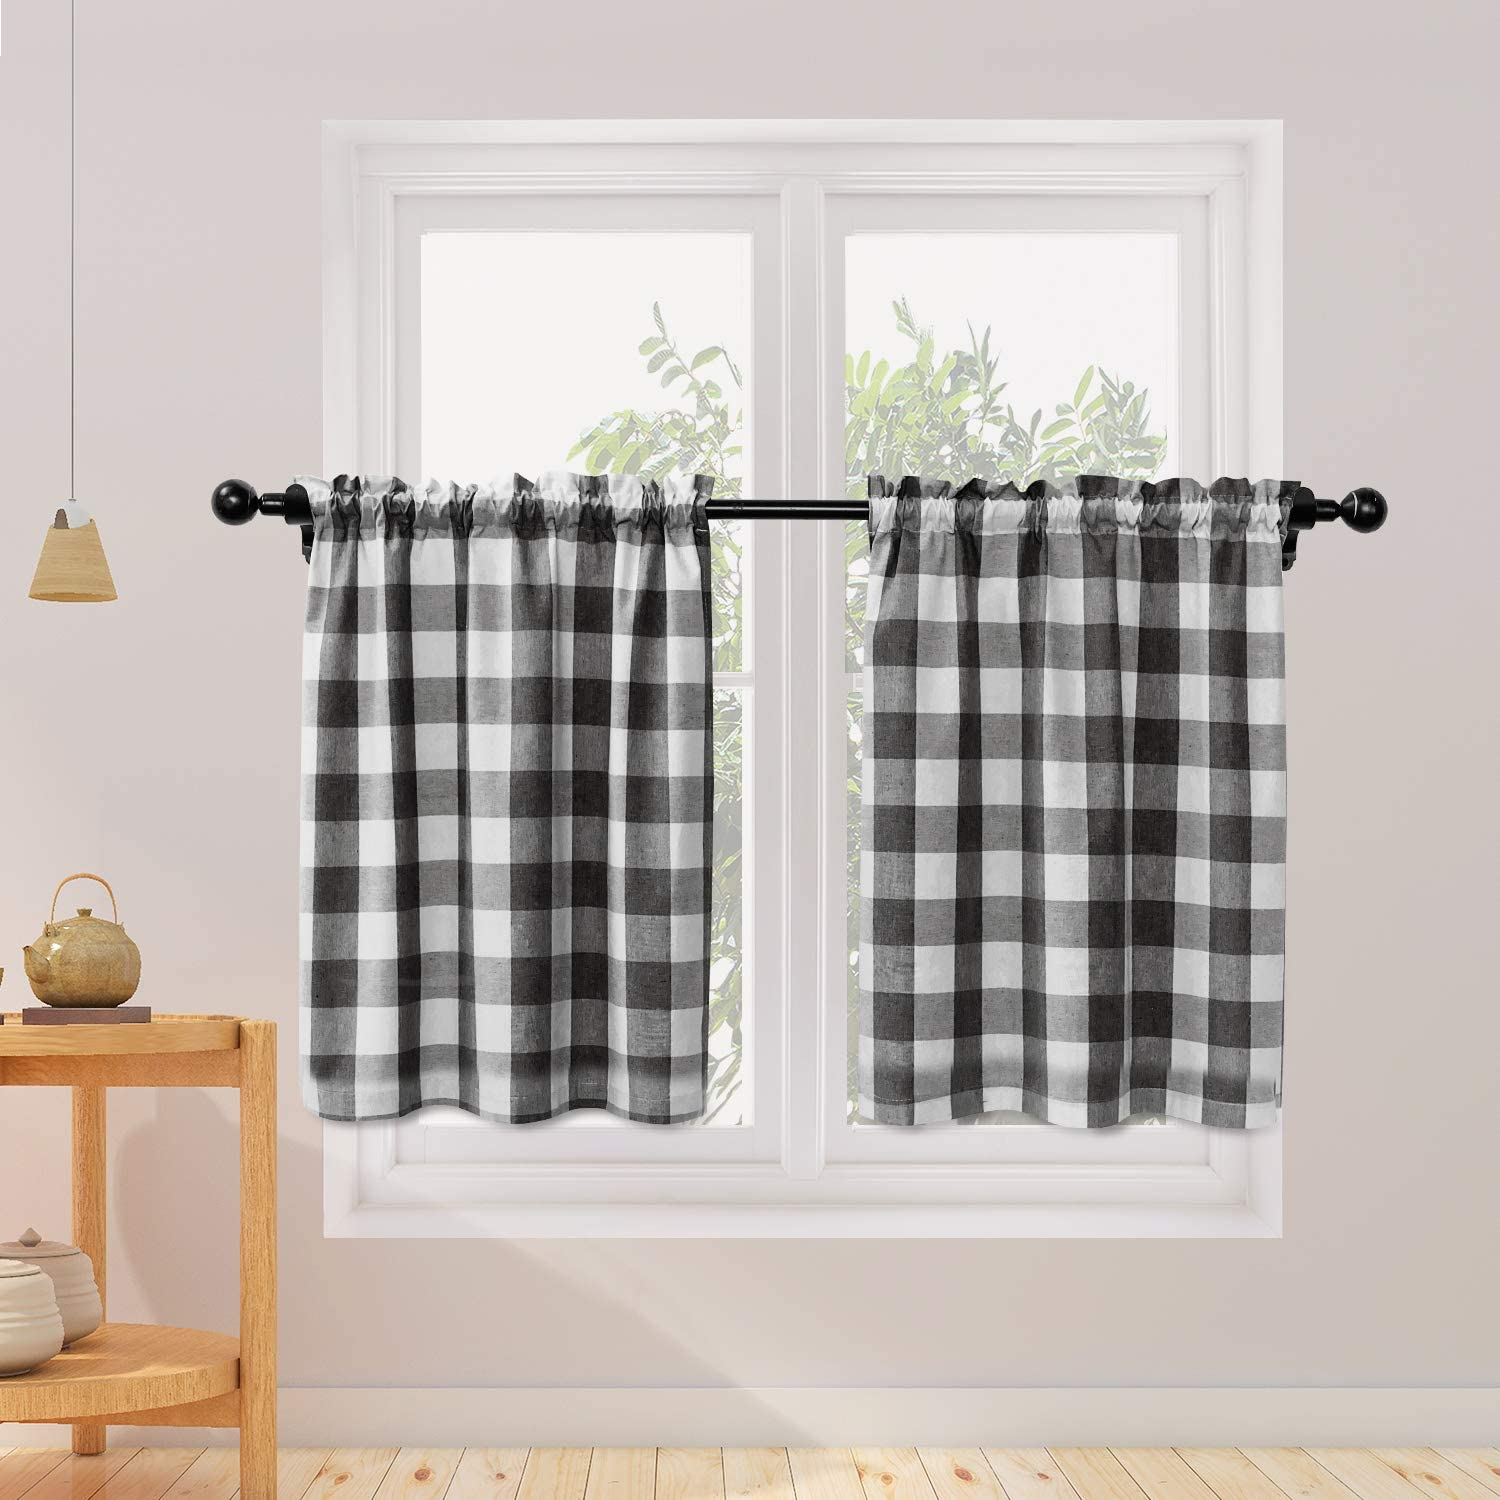 Natus Weaver Buffalo Check Kitchen Tier Curtais 24 Inches Long Plaid Gingham Rod Pocket Classic Cafe Curtains Country Farmhouse Kitchen Half Window Curtains 2 Panels Black White Amazon Co Uk Kitchen Home